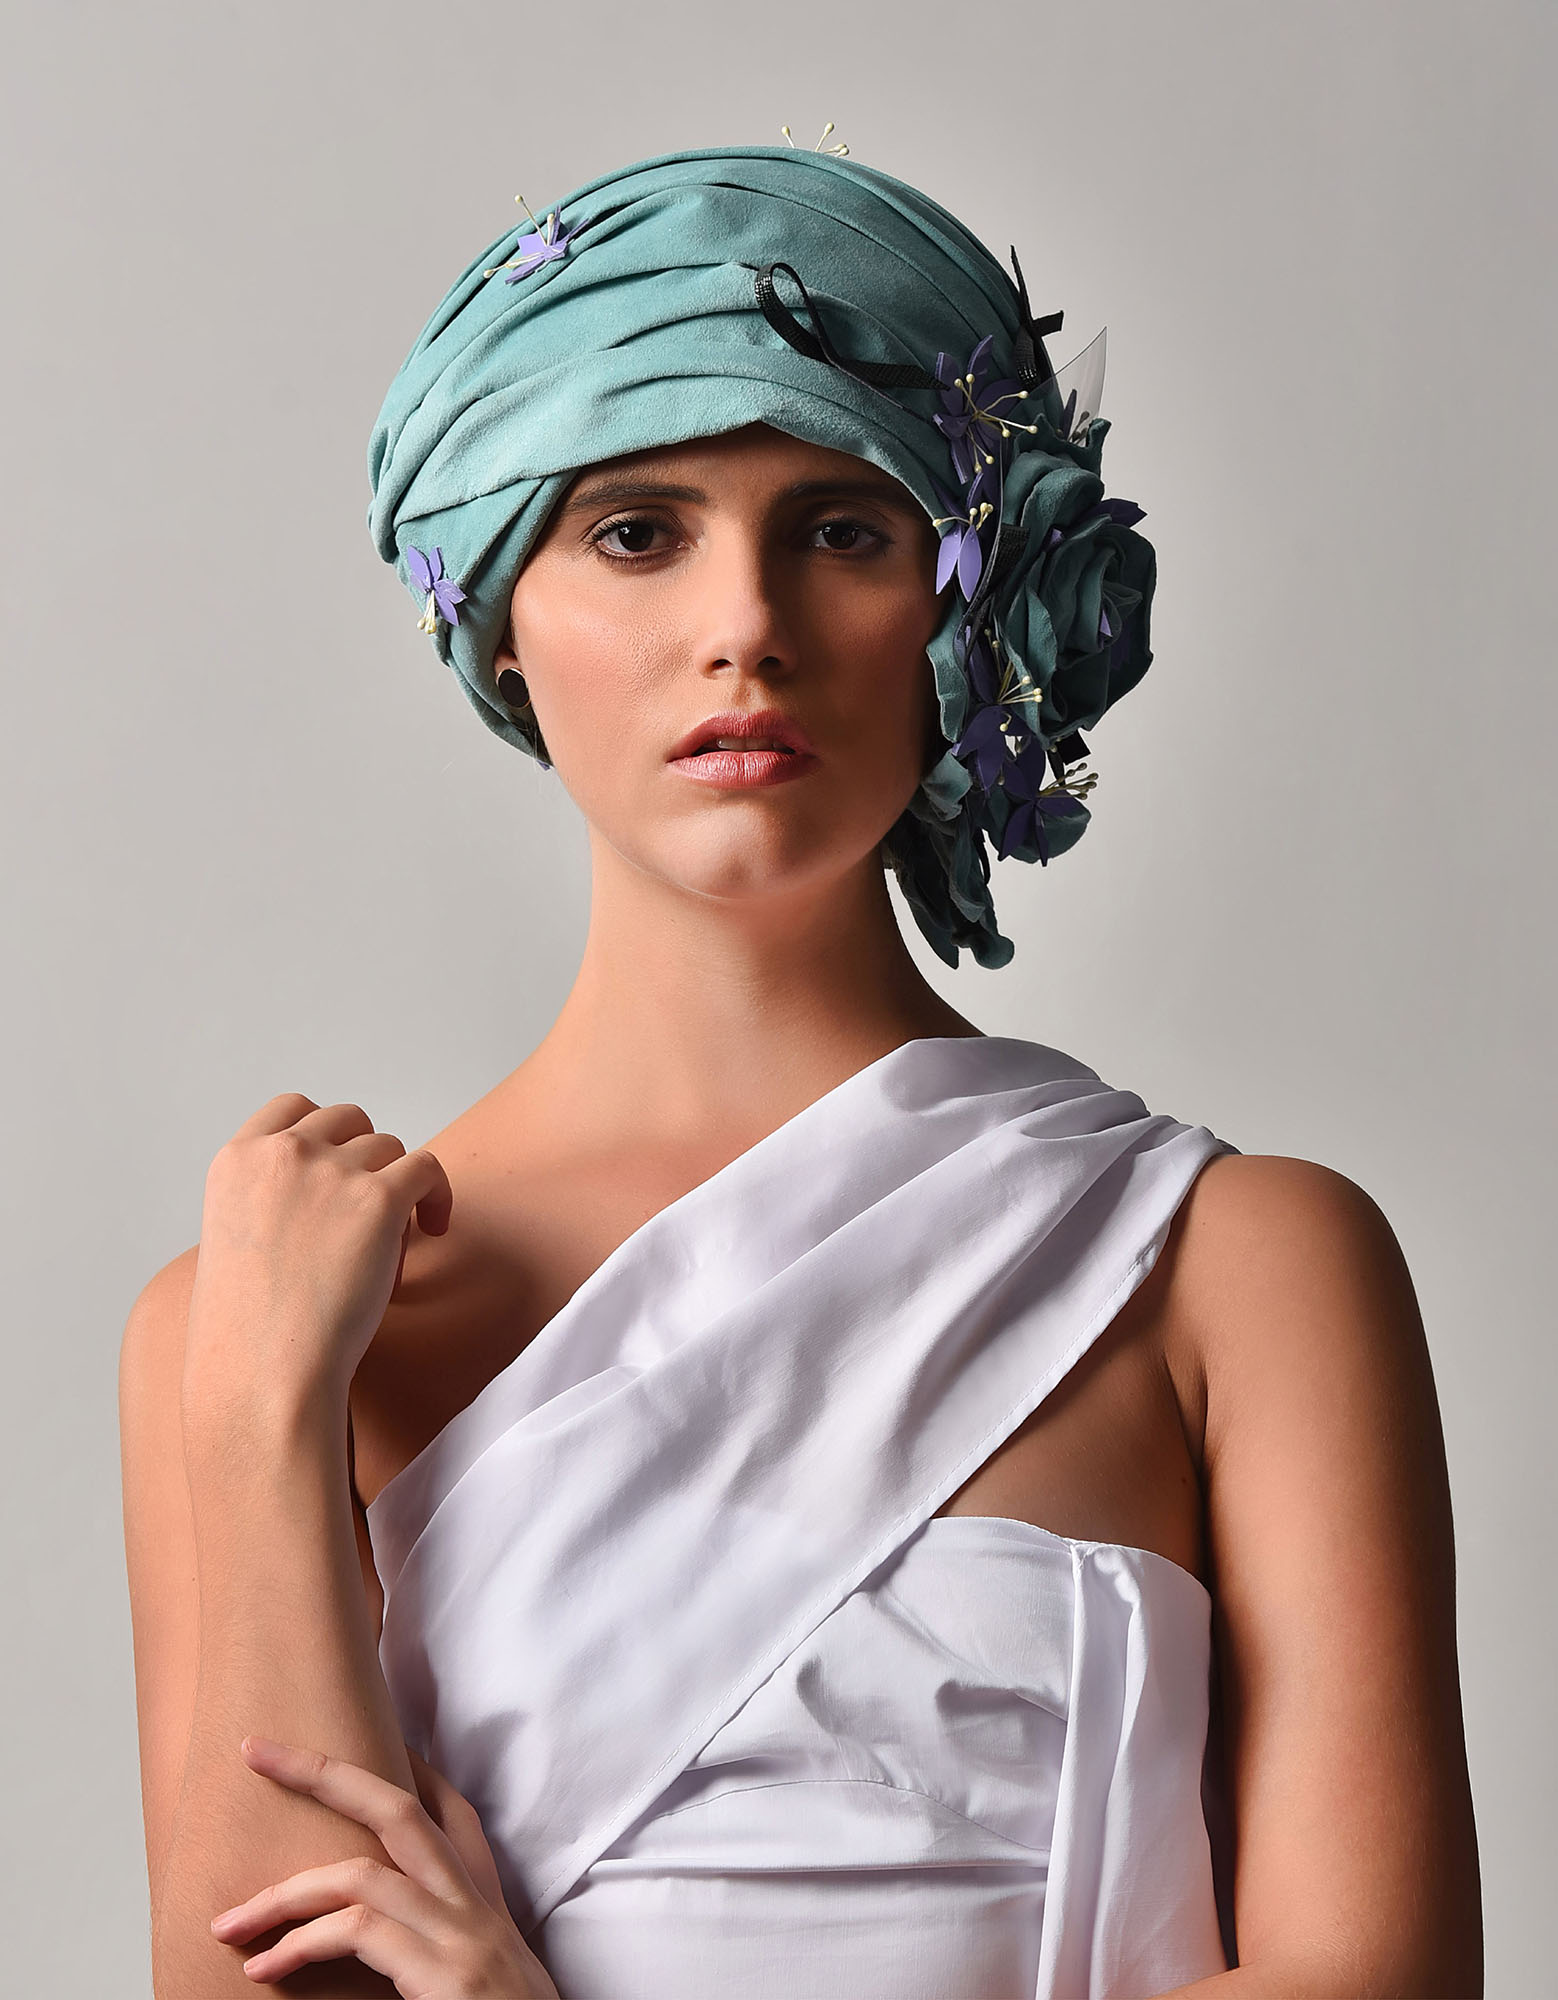 Aqua suede turban with lavender patent flowers and forest green leather twists.